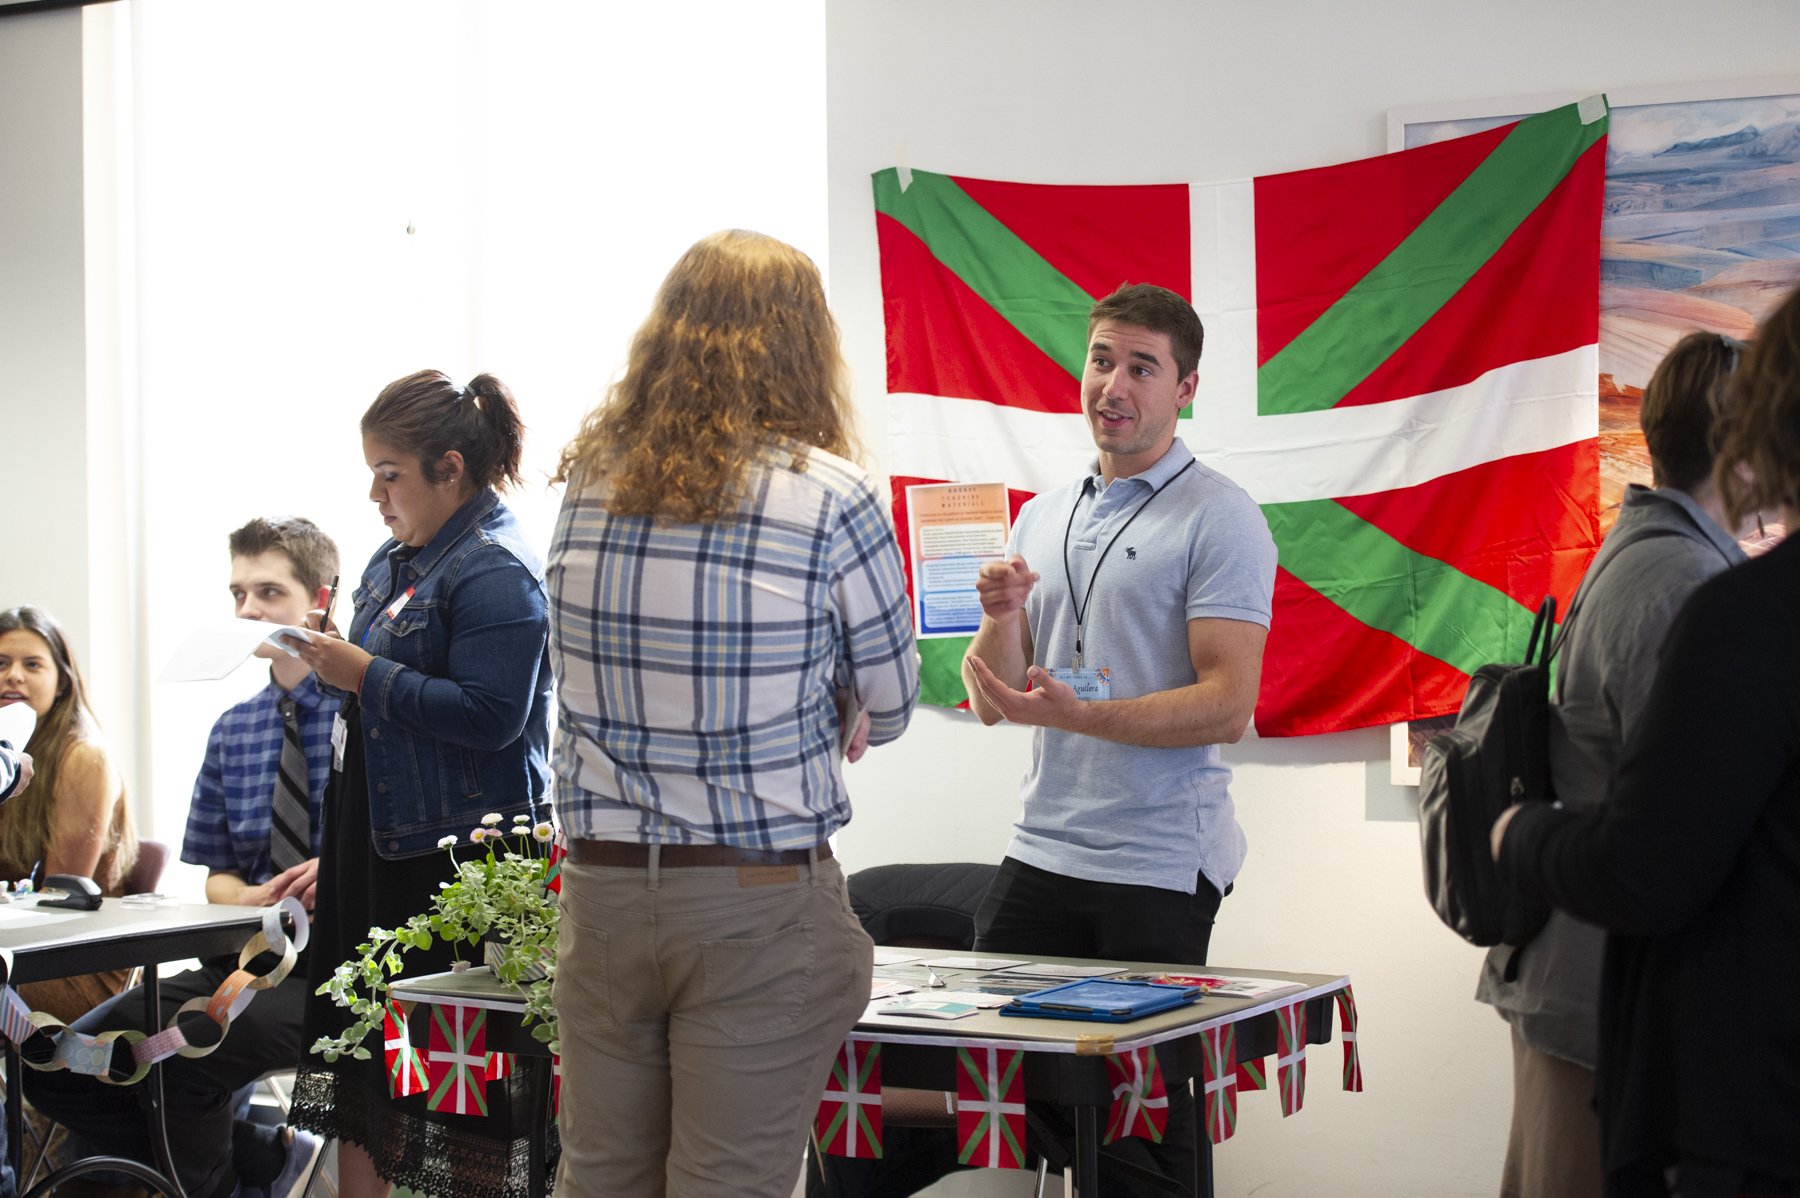 Student presenting his work to an attendee